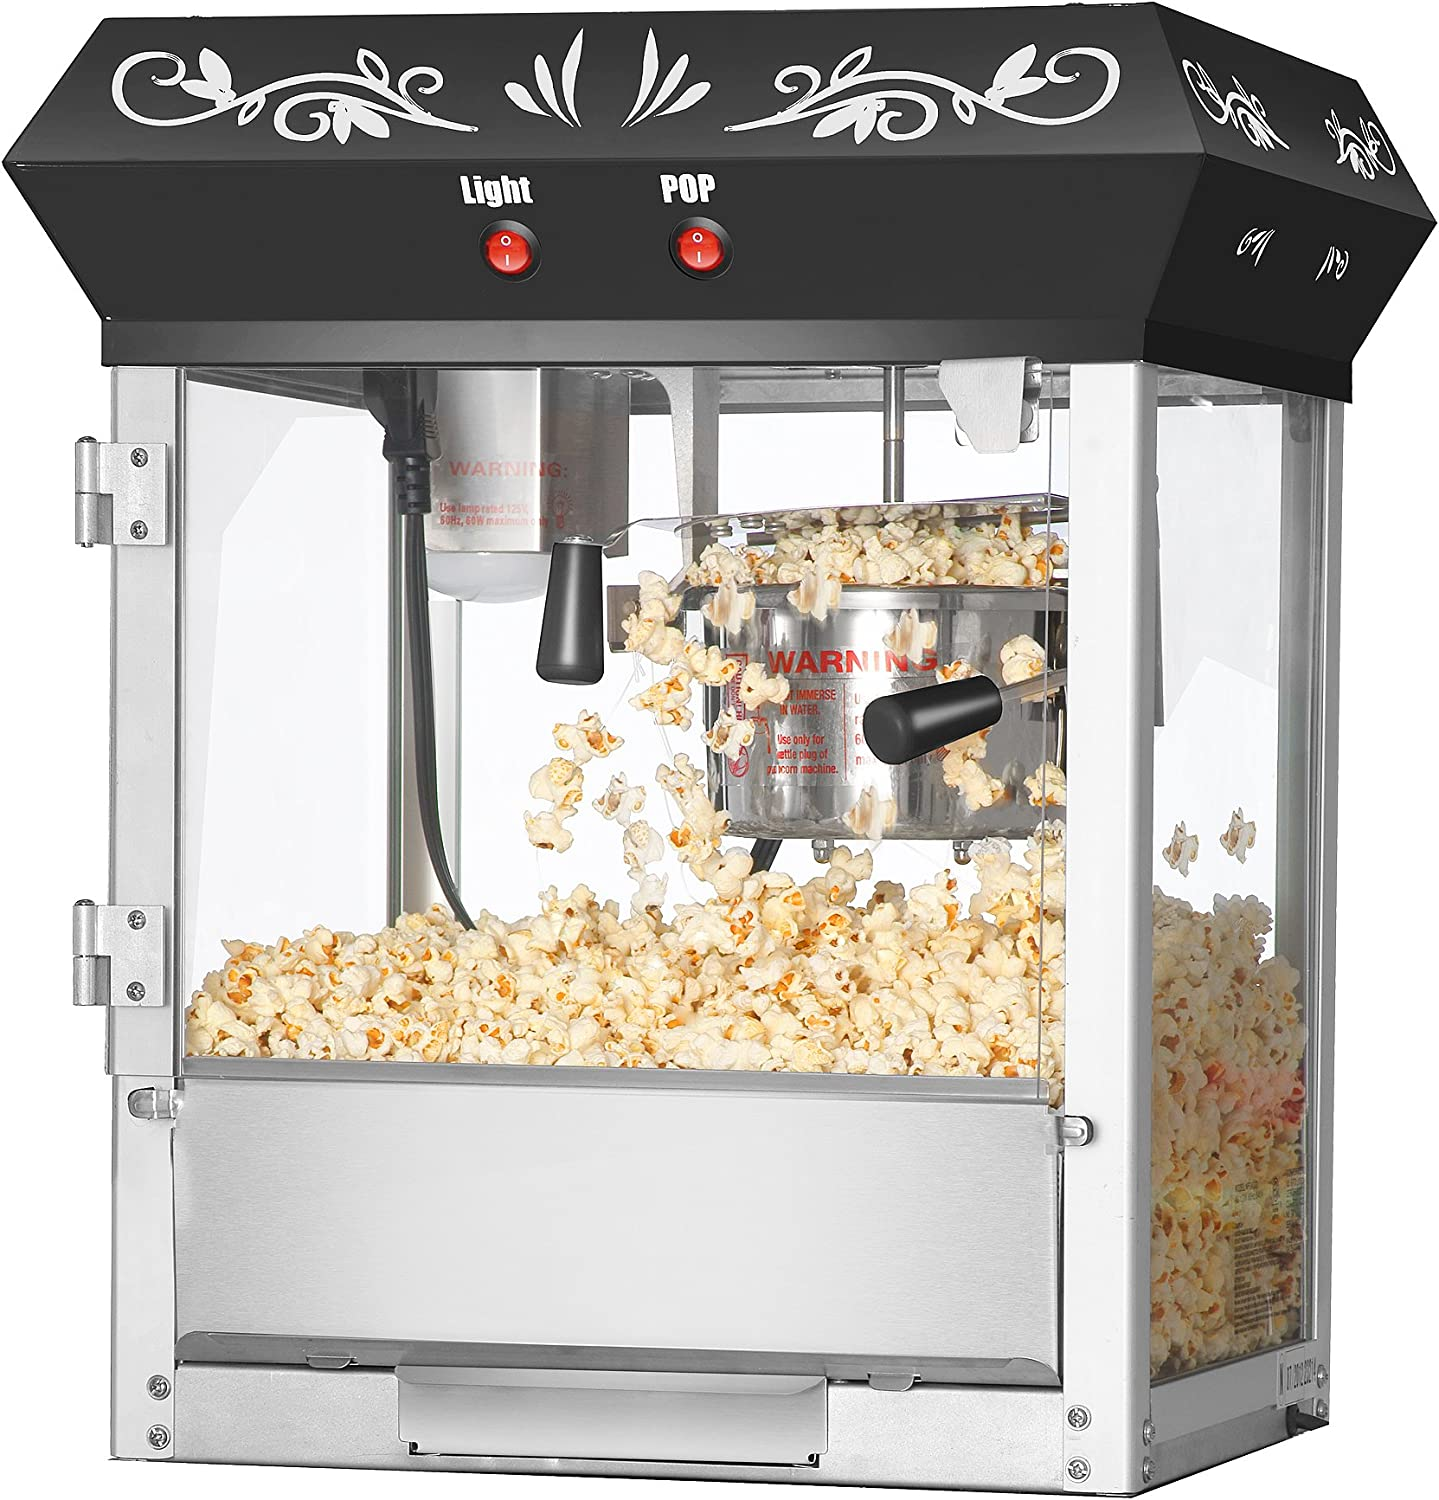 Amazon Com Great Northern Popcorn Black 6 Oz Ounce Foundation Old Fashioned Movie Theater Style Popcorn Popper Electric Popcorn Poppers Kitchen Dining